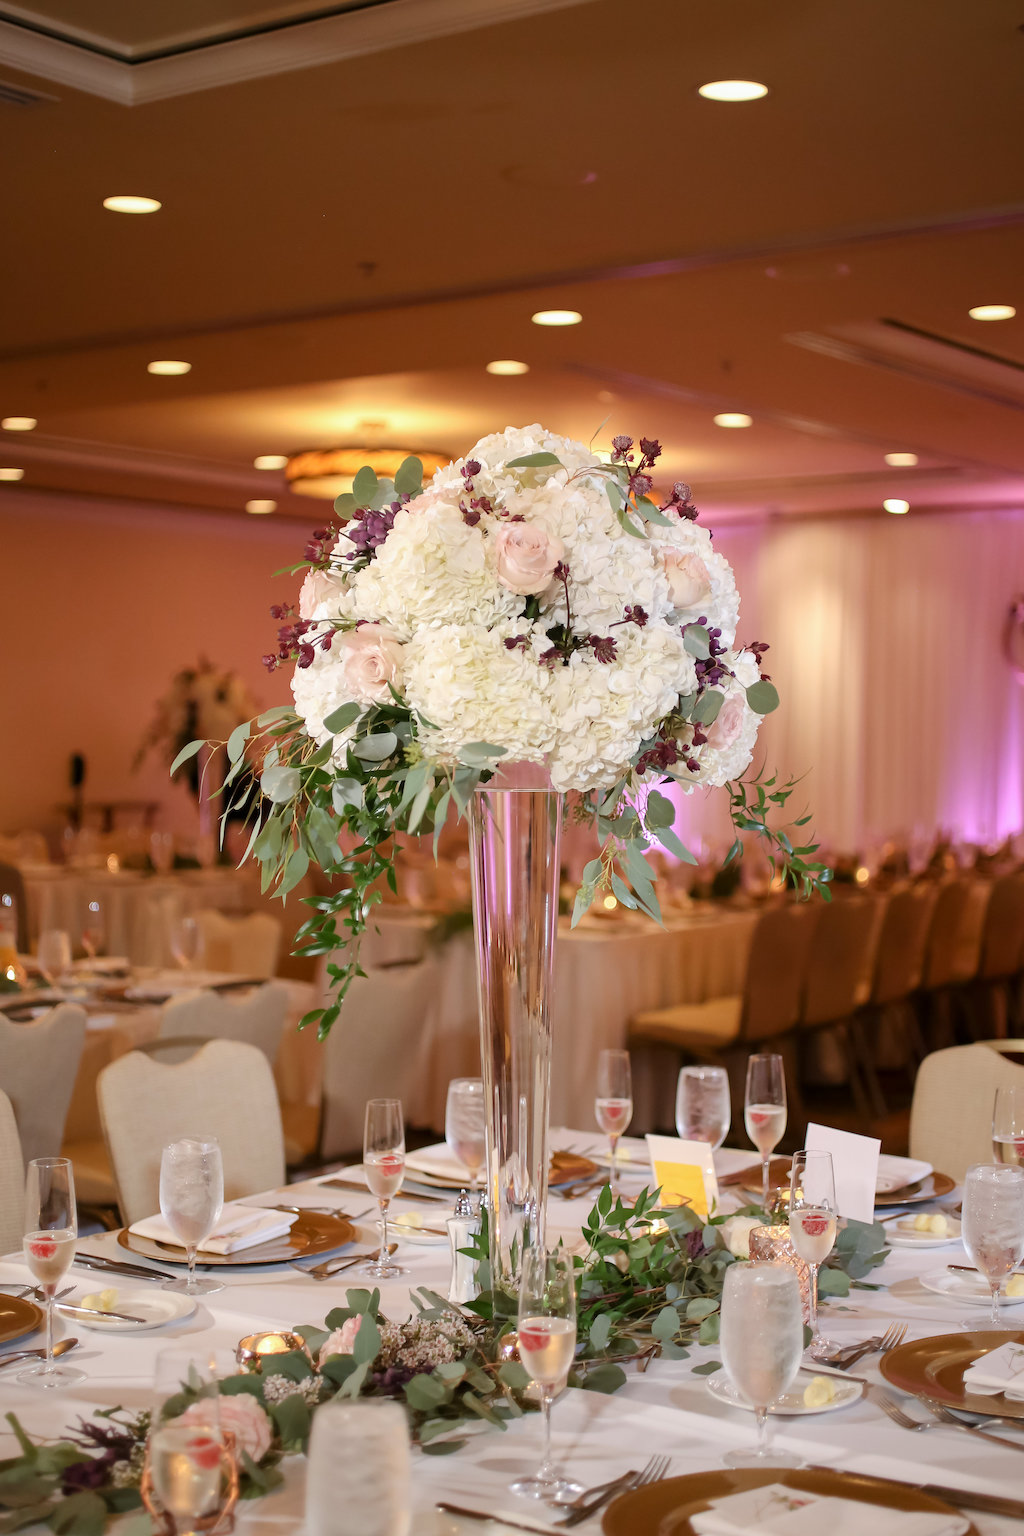 Ballroom Wedding Reception Decor, Long Table with White Tablecloth, Tall Glass Cylinder Vase with White Hydrangeas, Blush pink Roses, and Greenery Flower Centerpiece, Greenery Garland   Tampa Bay Wedding Photographer Lifelong Photography Studios   Wedding Planner Special Moments Event Planning   Clearwater Beach Hotel Wedding Venue Sandpearl Resort